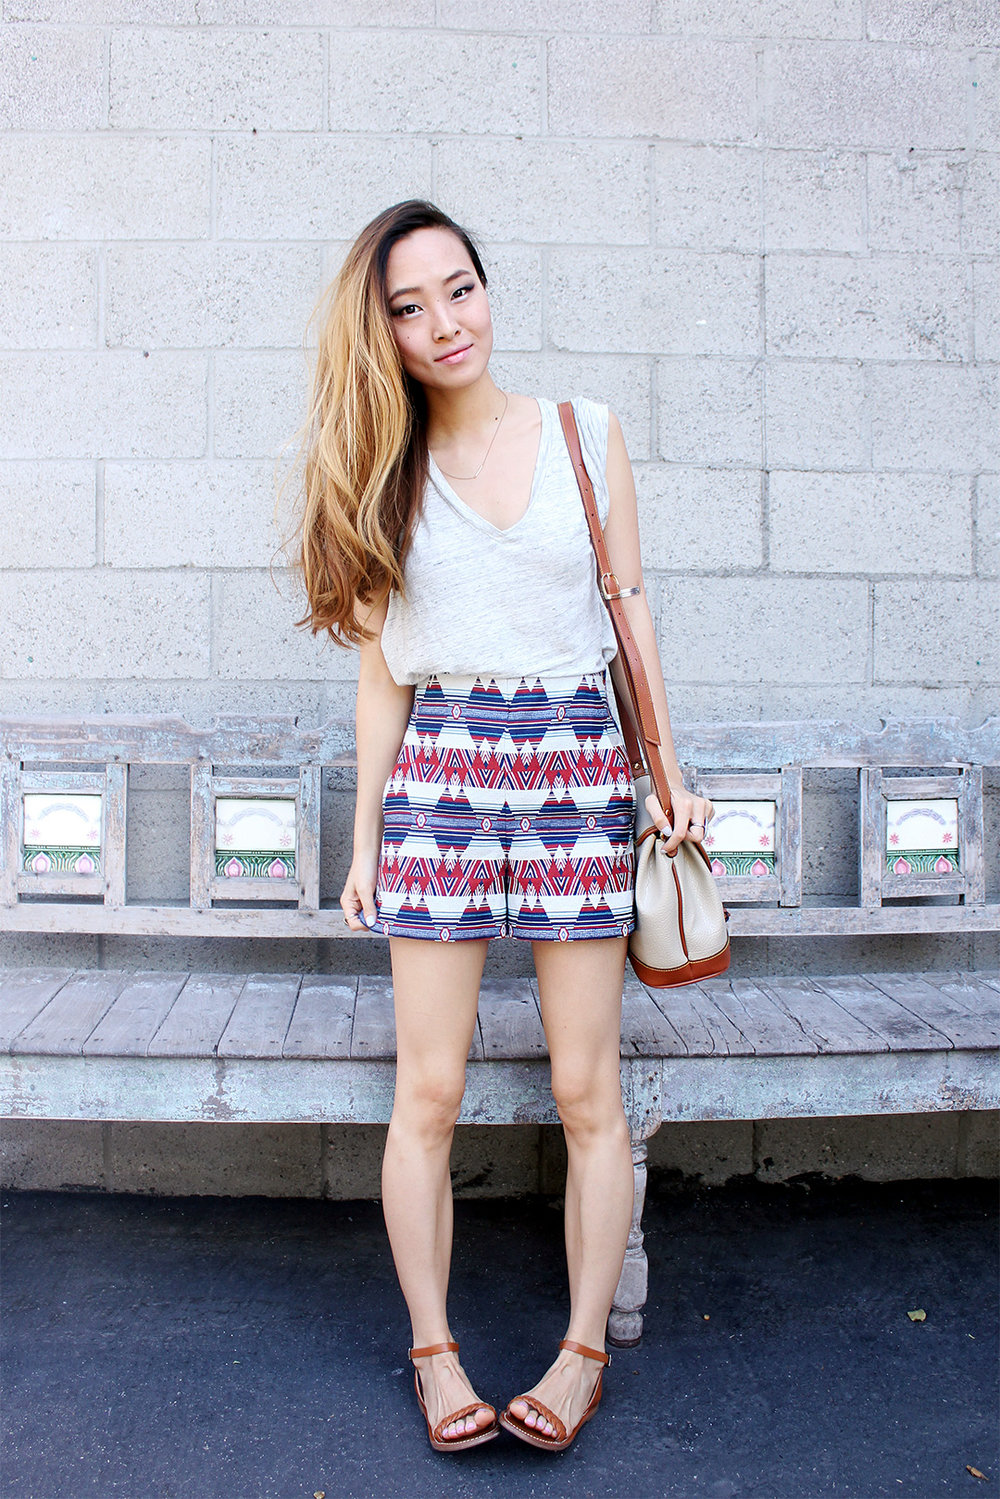 Madewell shirt and shoes, Zara Shorts, Dooney & Bourke Bag